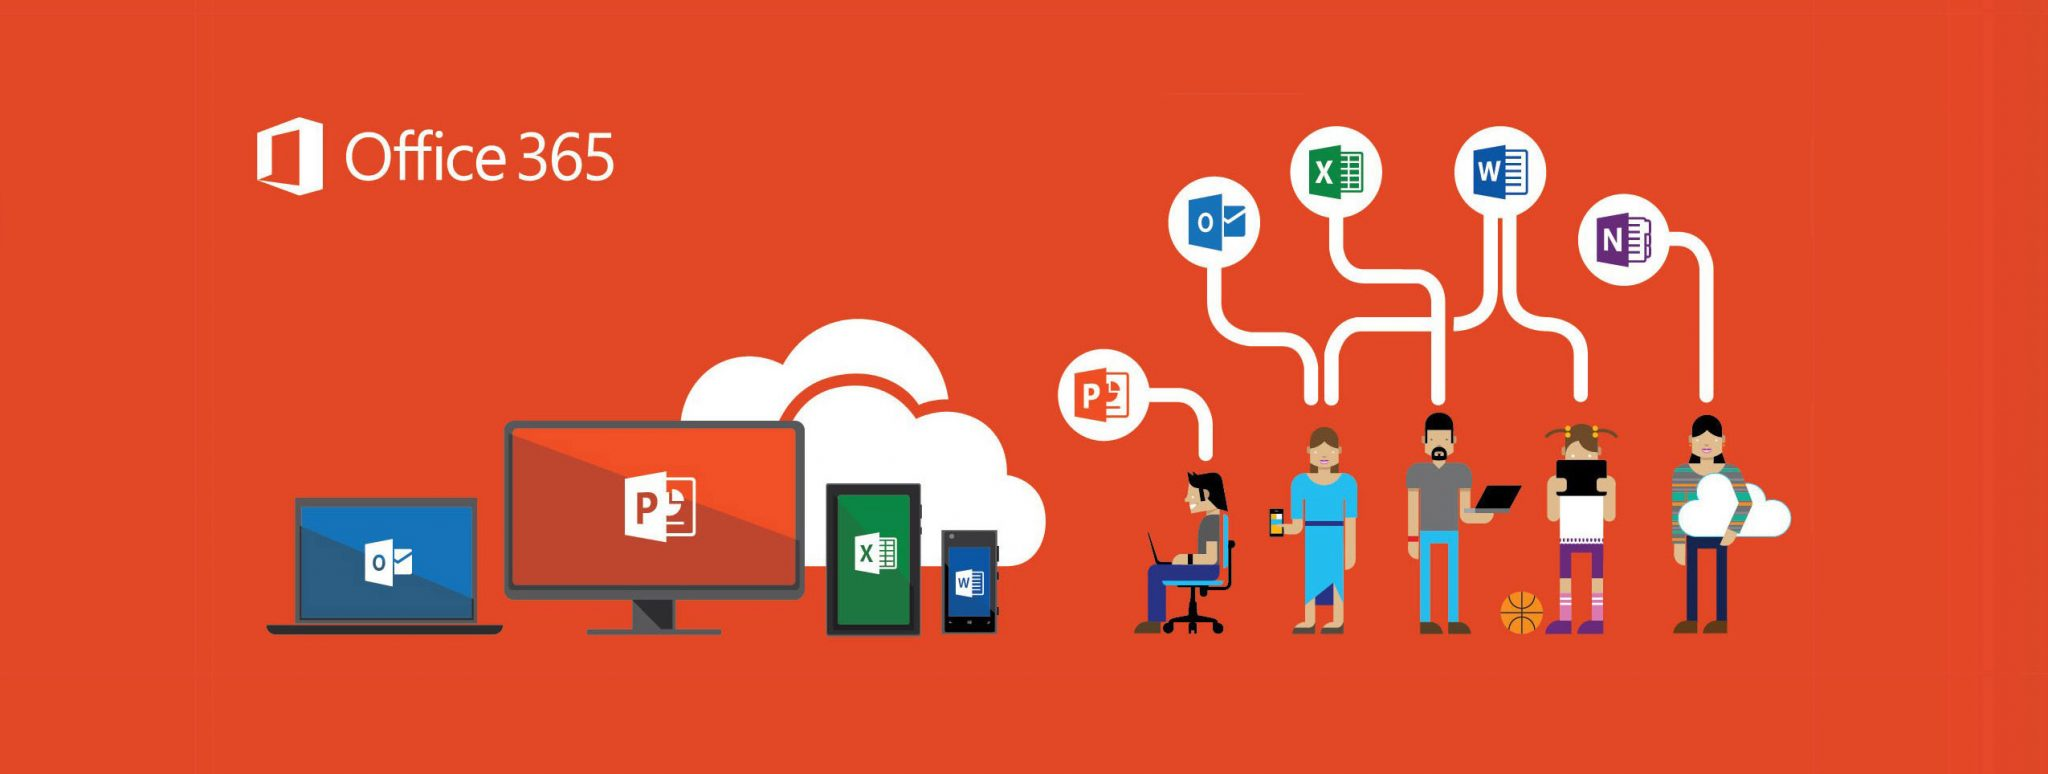 Office 365 for Business